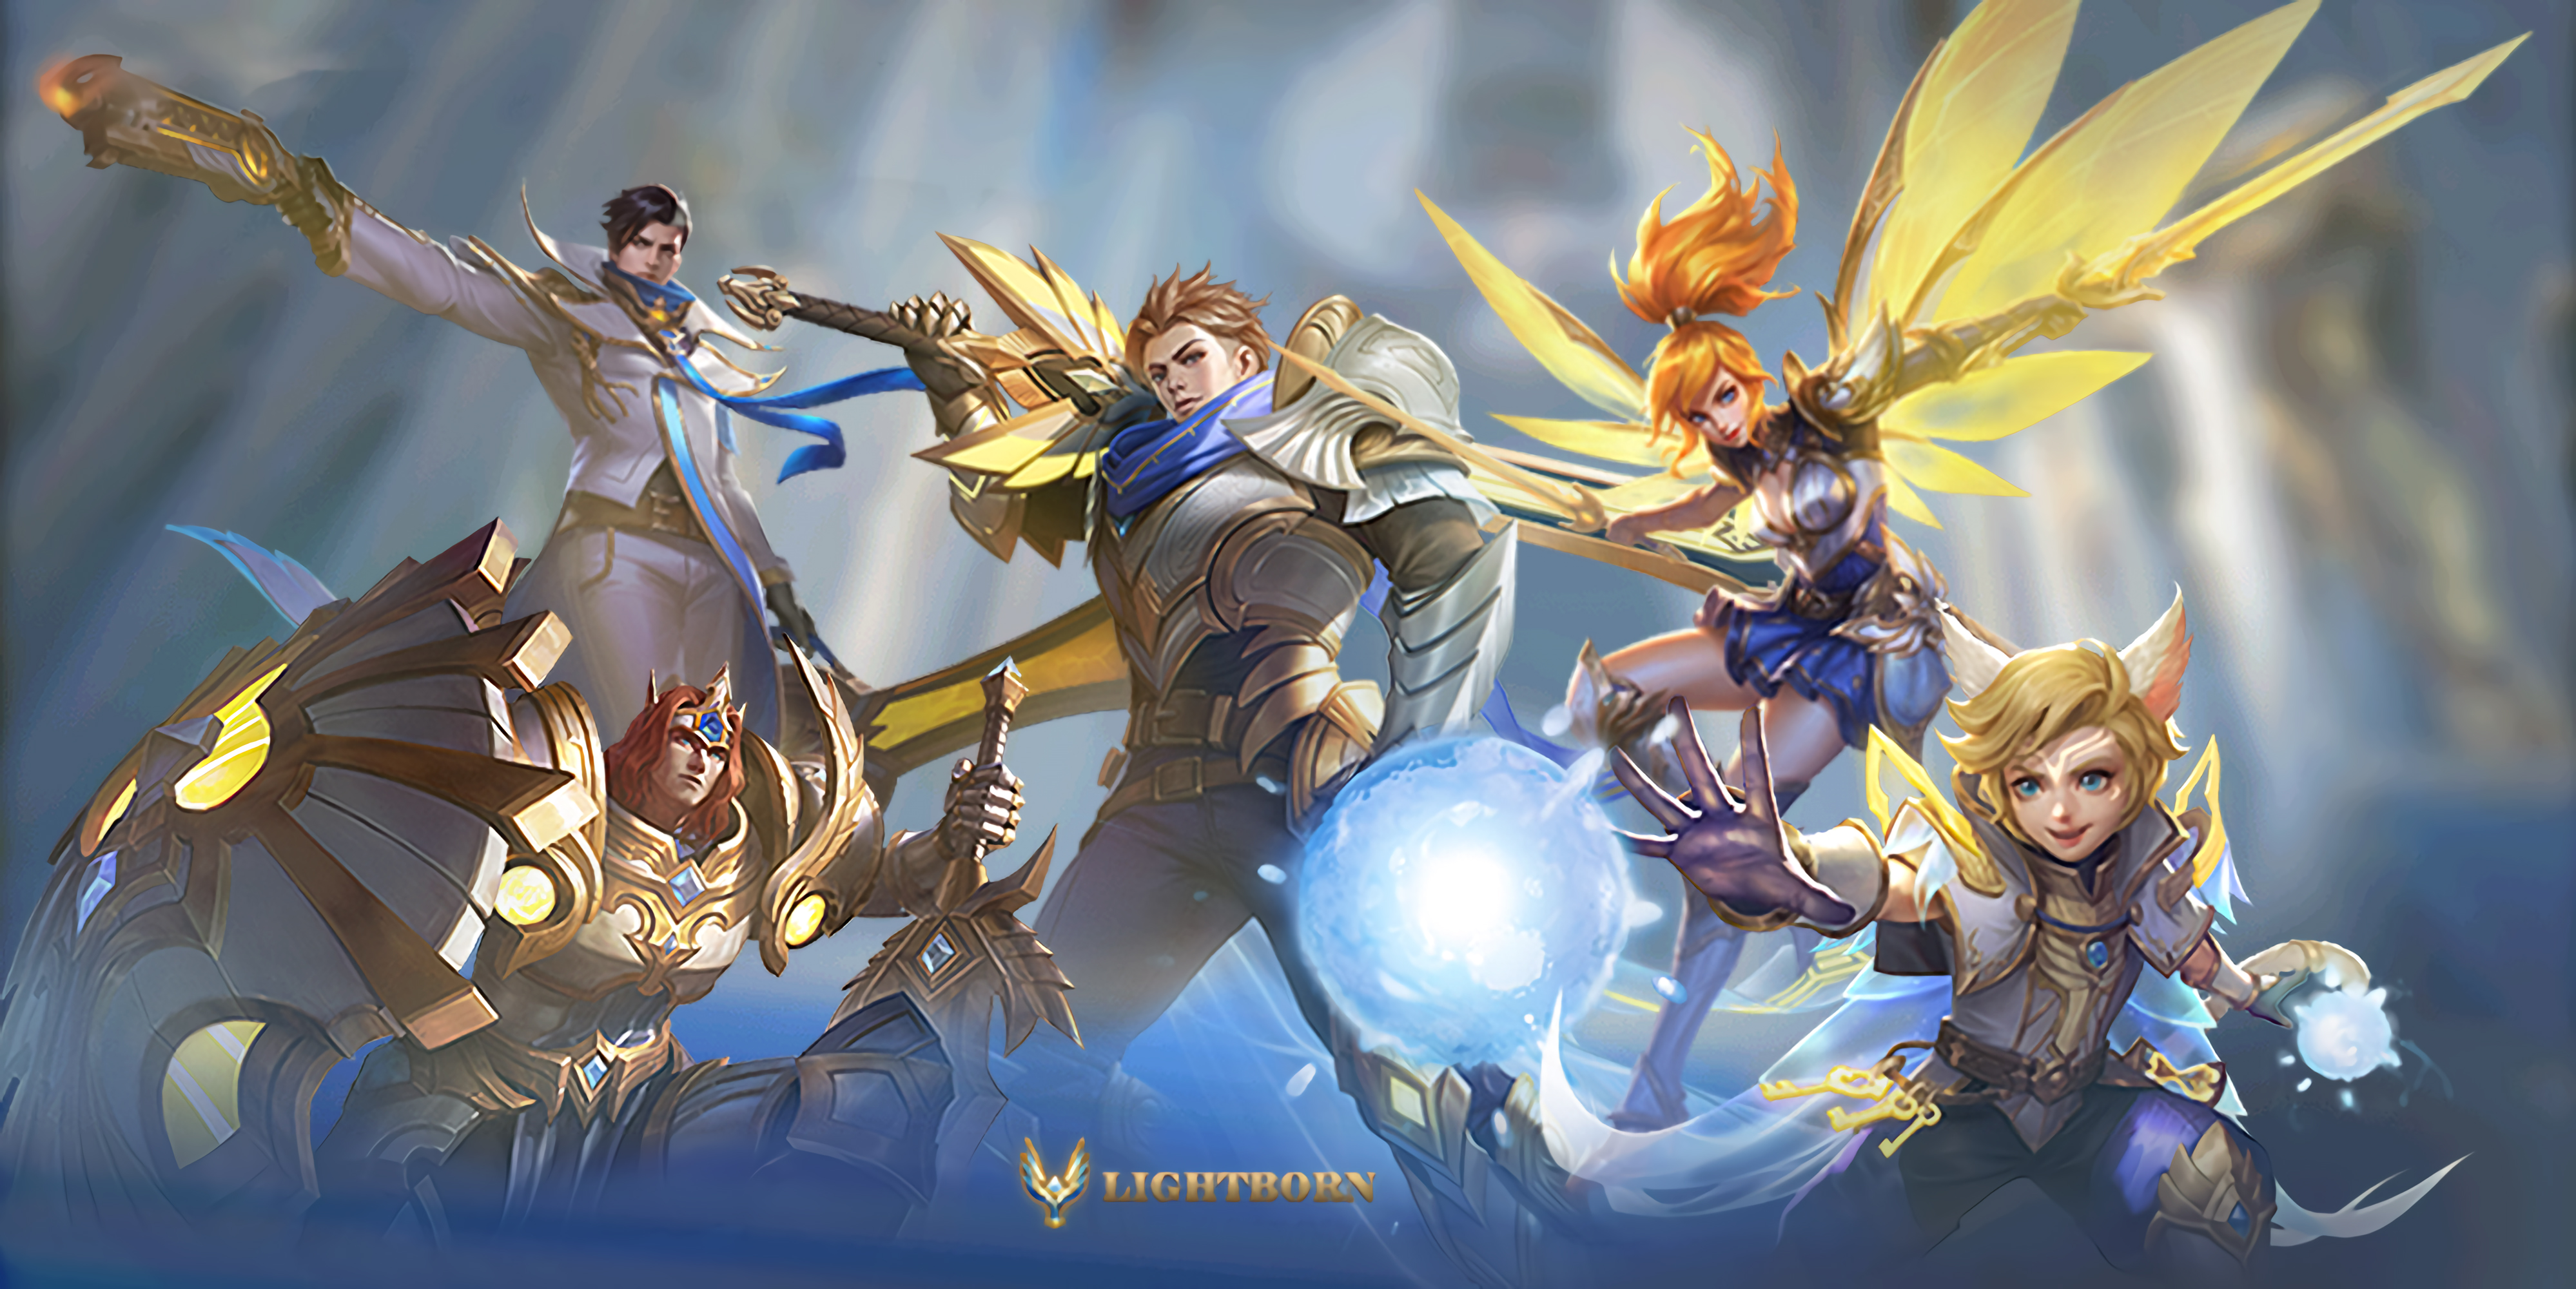 Lightborn Squad Mobile Legends Wiki